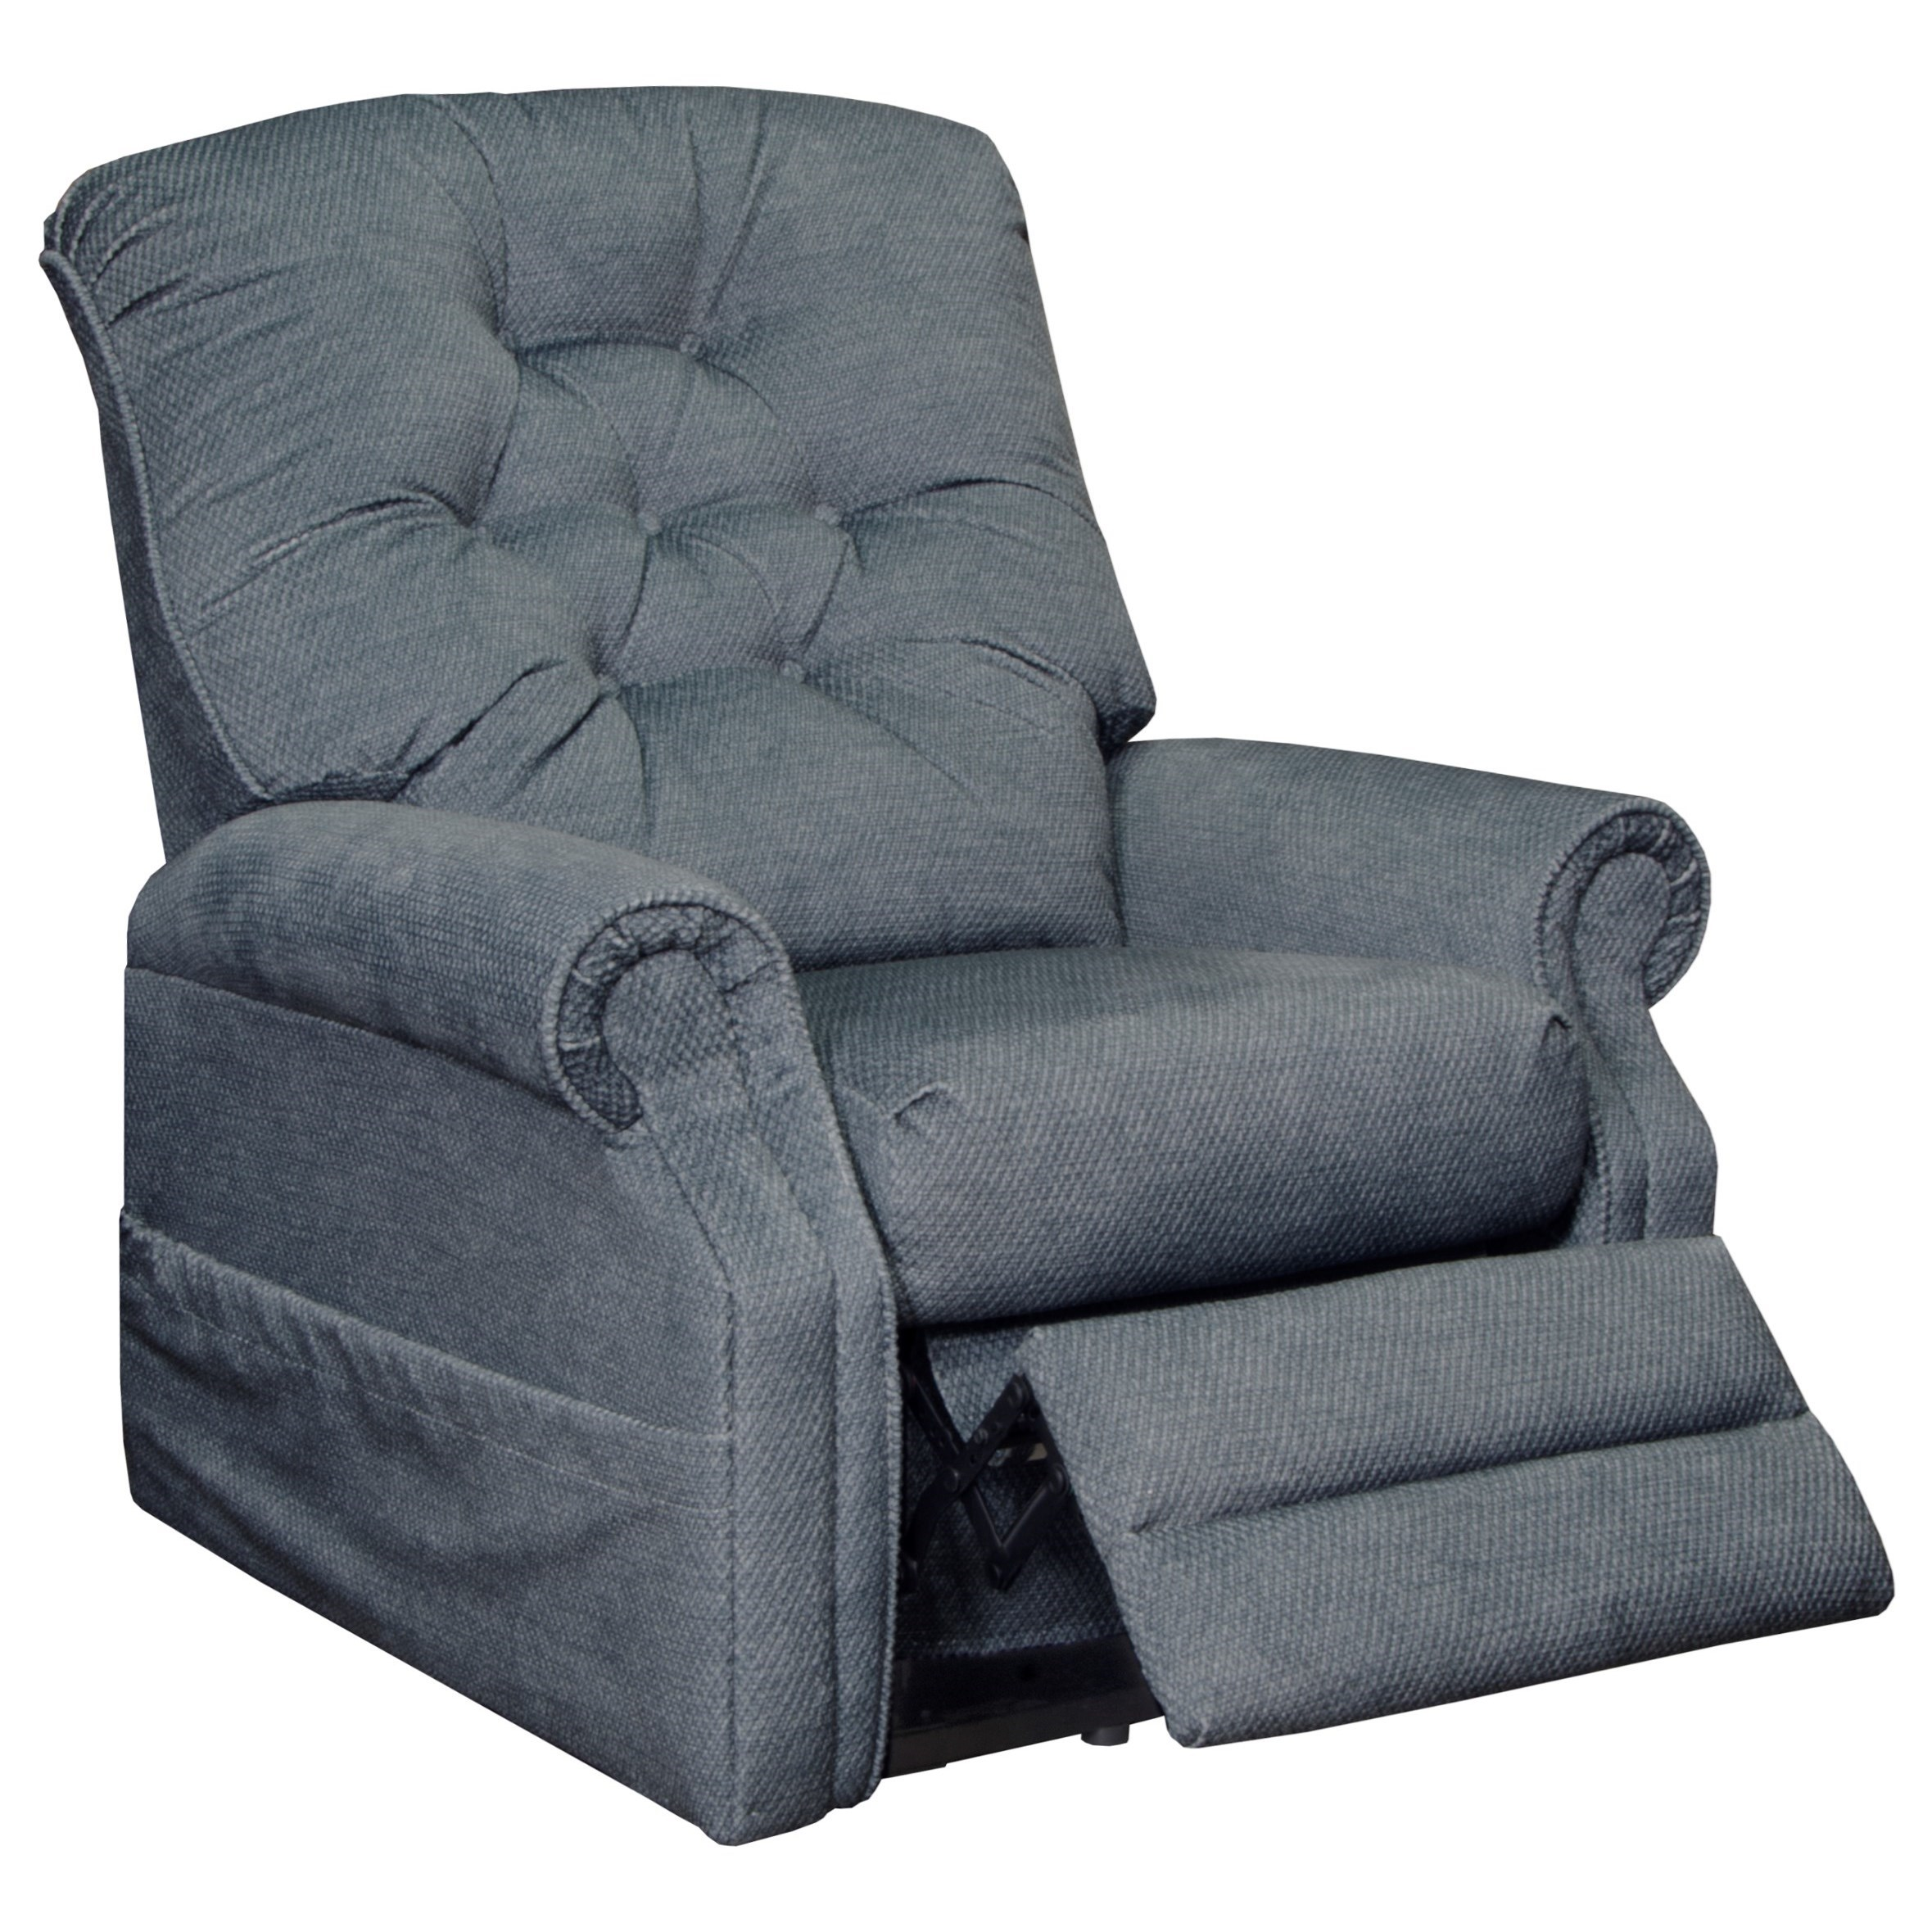 "4824 ""Pow'r Lift"" Recliner by Catnapper at VanDrie Home Furnishings"